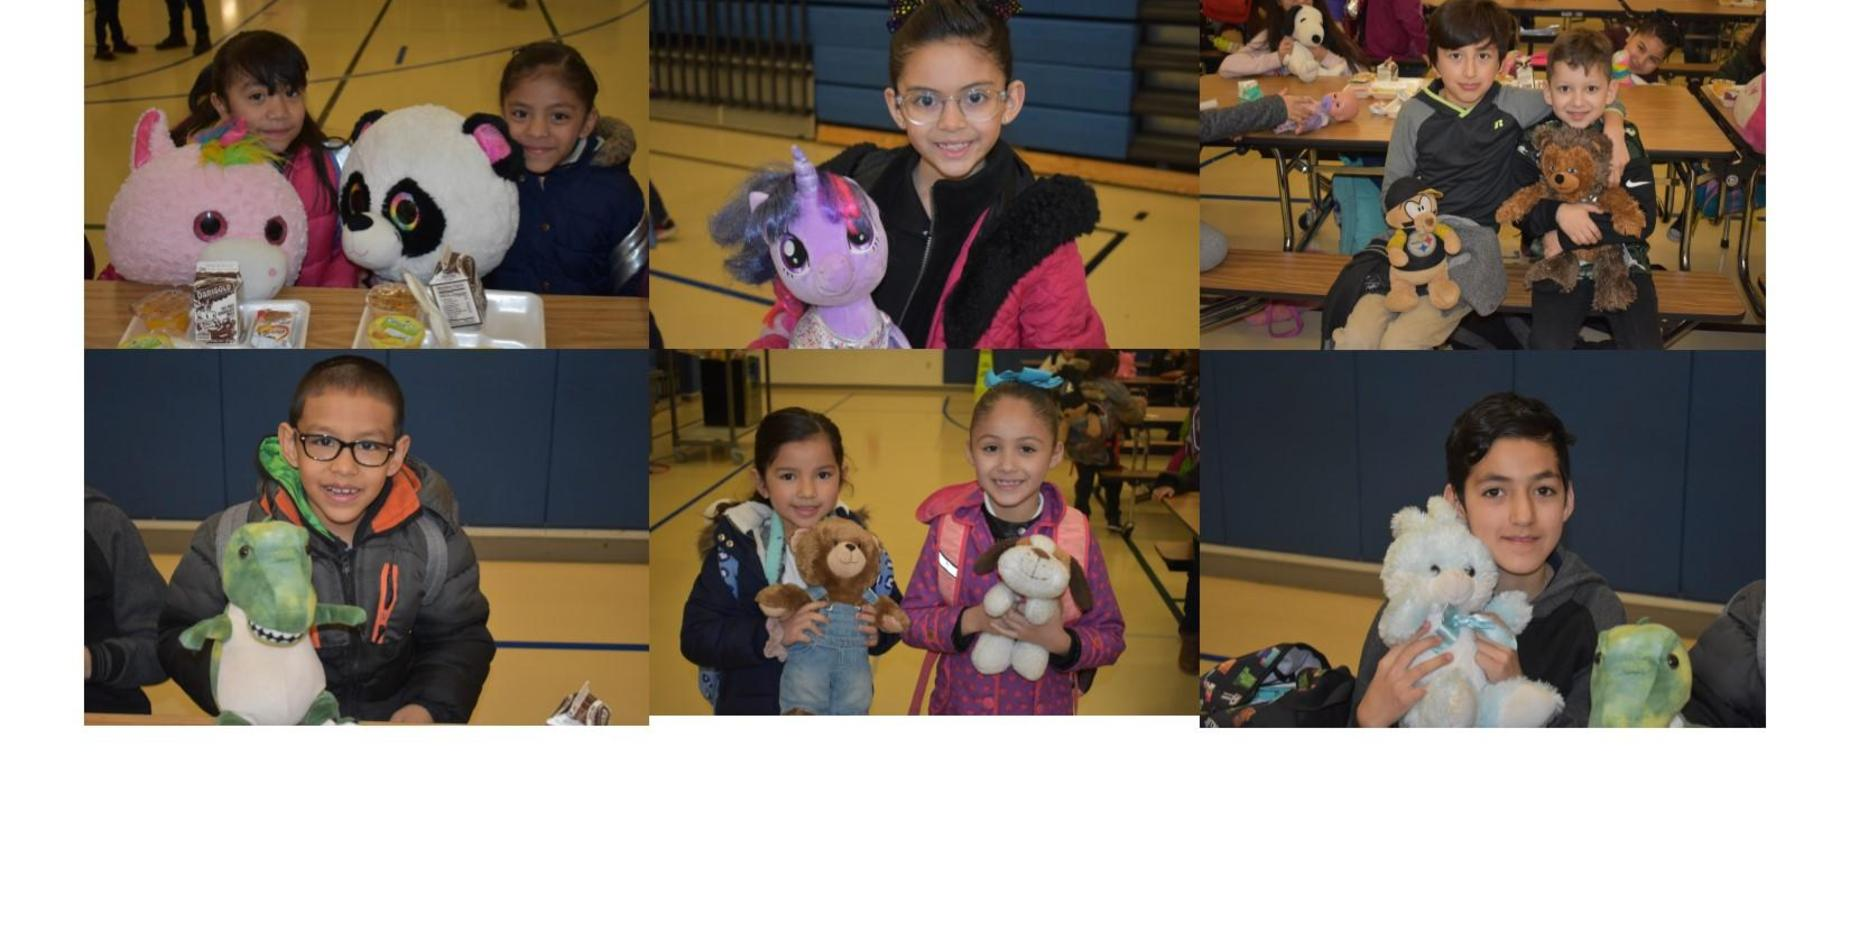 6 pictures of students holding their stuffed animals for stuffed animal day.  All students are smiling!